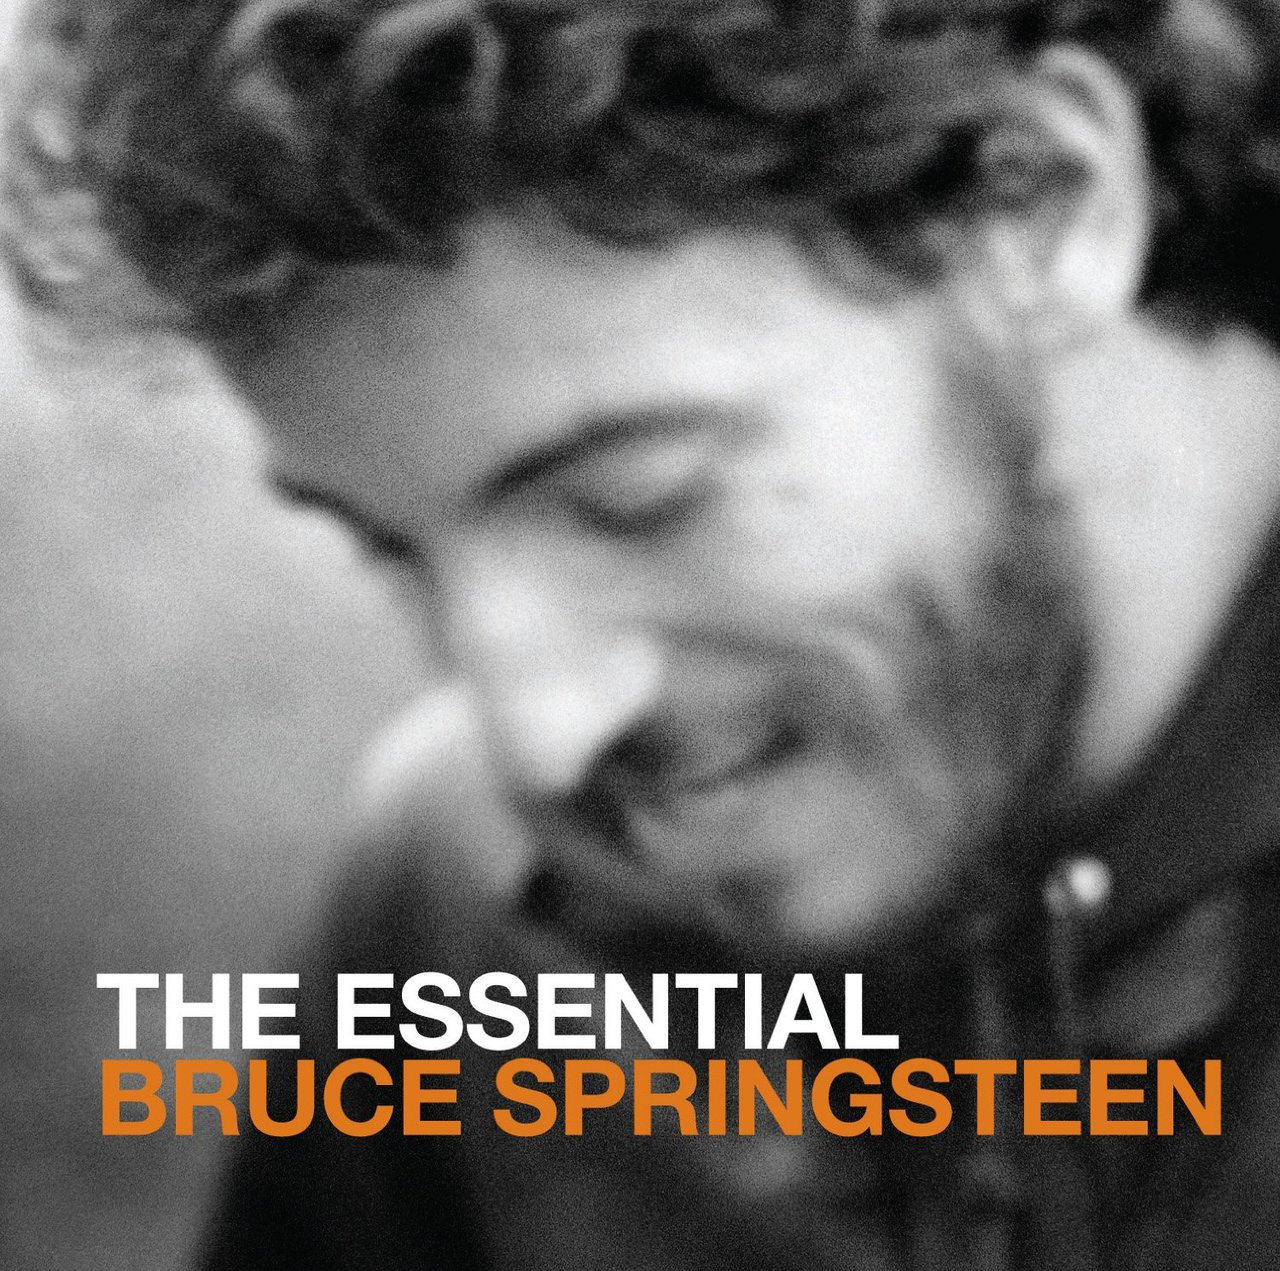 Bruce Springsteen The Essential 2015 2 X Cd